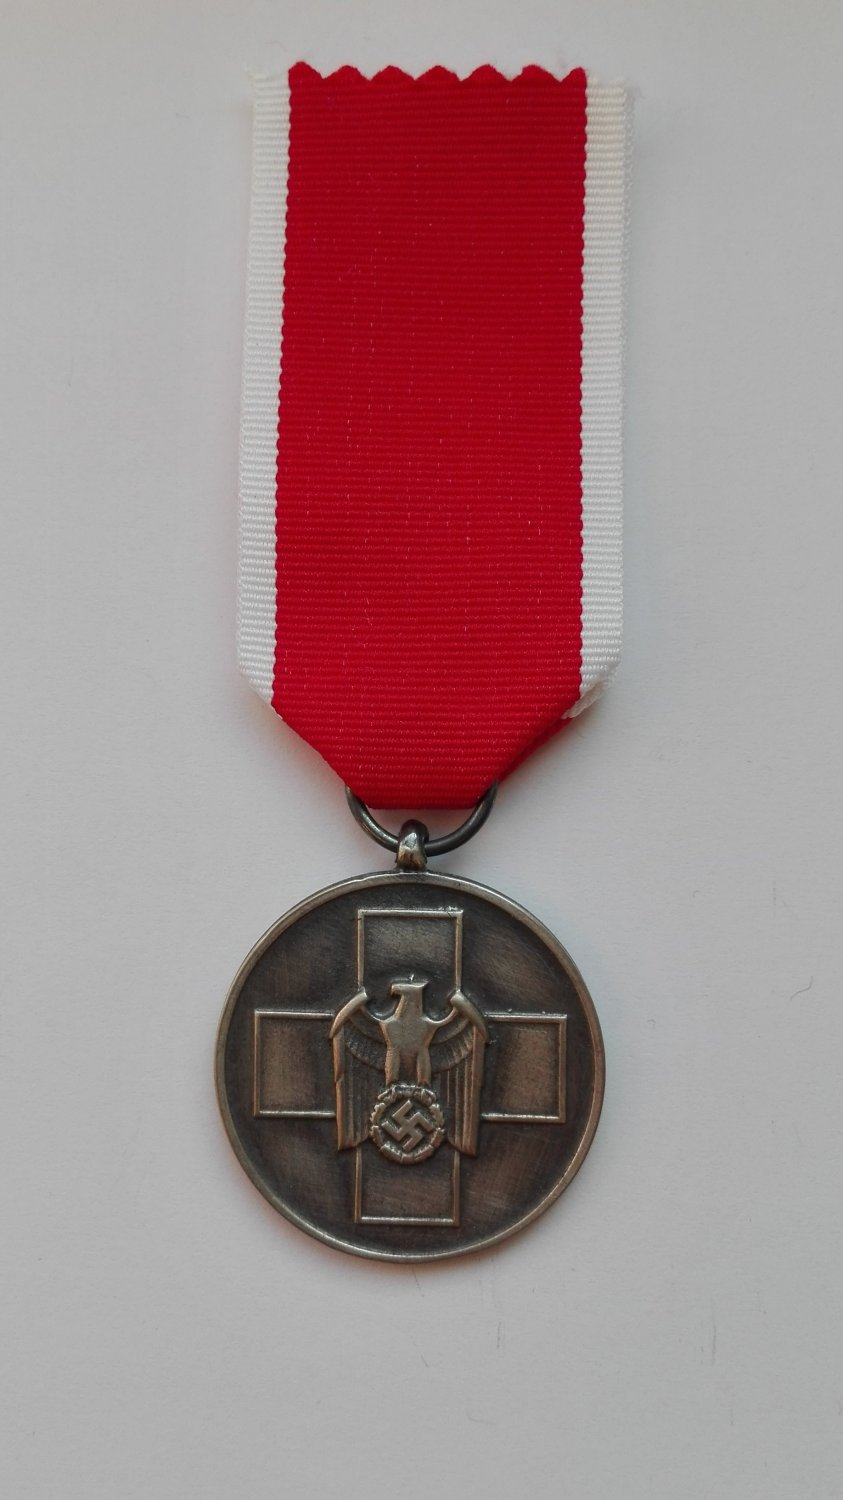 WWII THE GERMAN SOCIAL WELFARE DECORATION - MEDAL